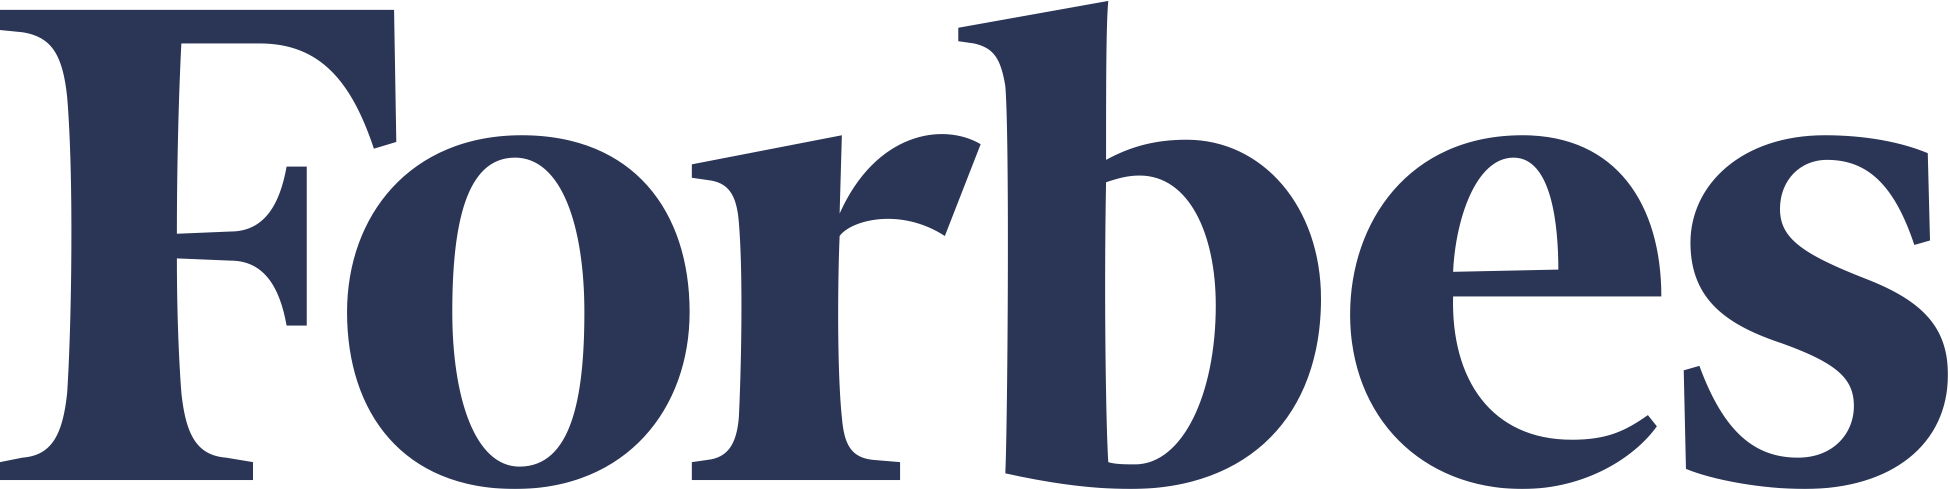 Forbes_com.png